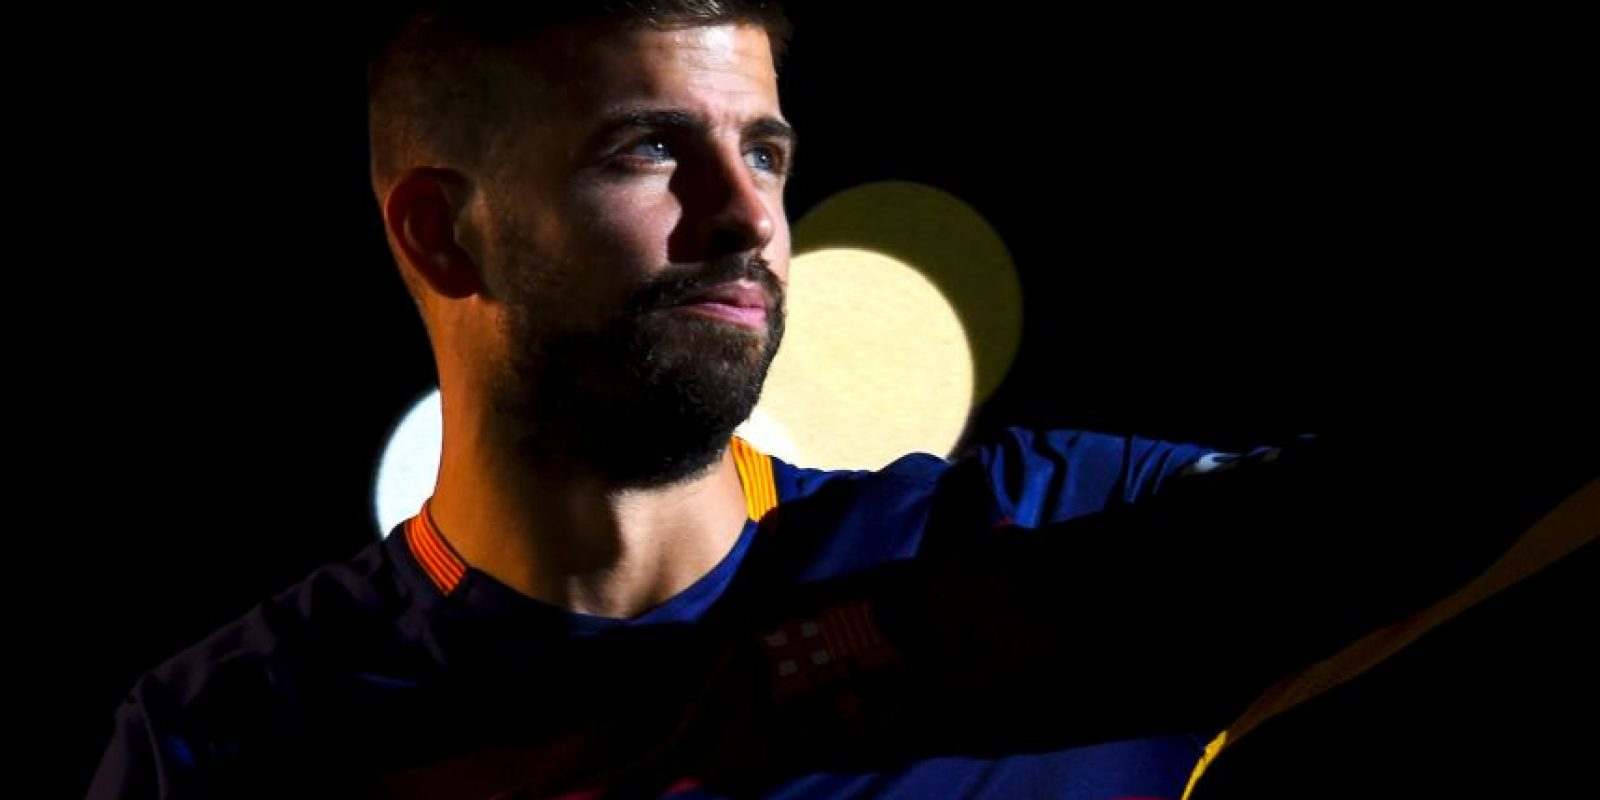 1. Gerard Piqué Foto: Getty Images